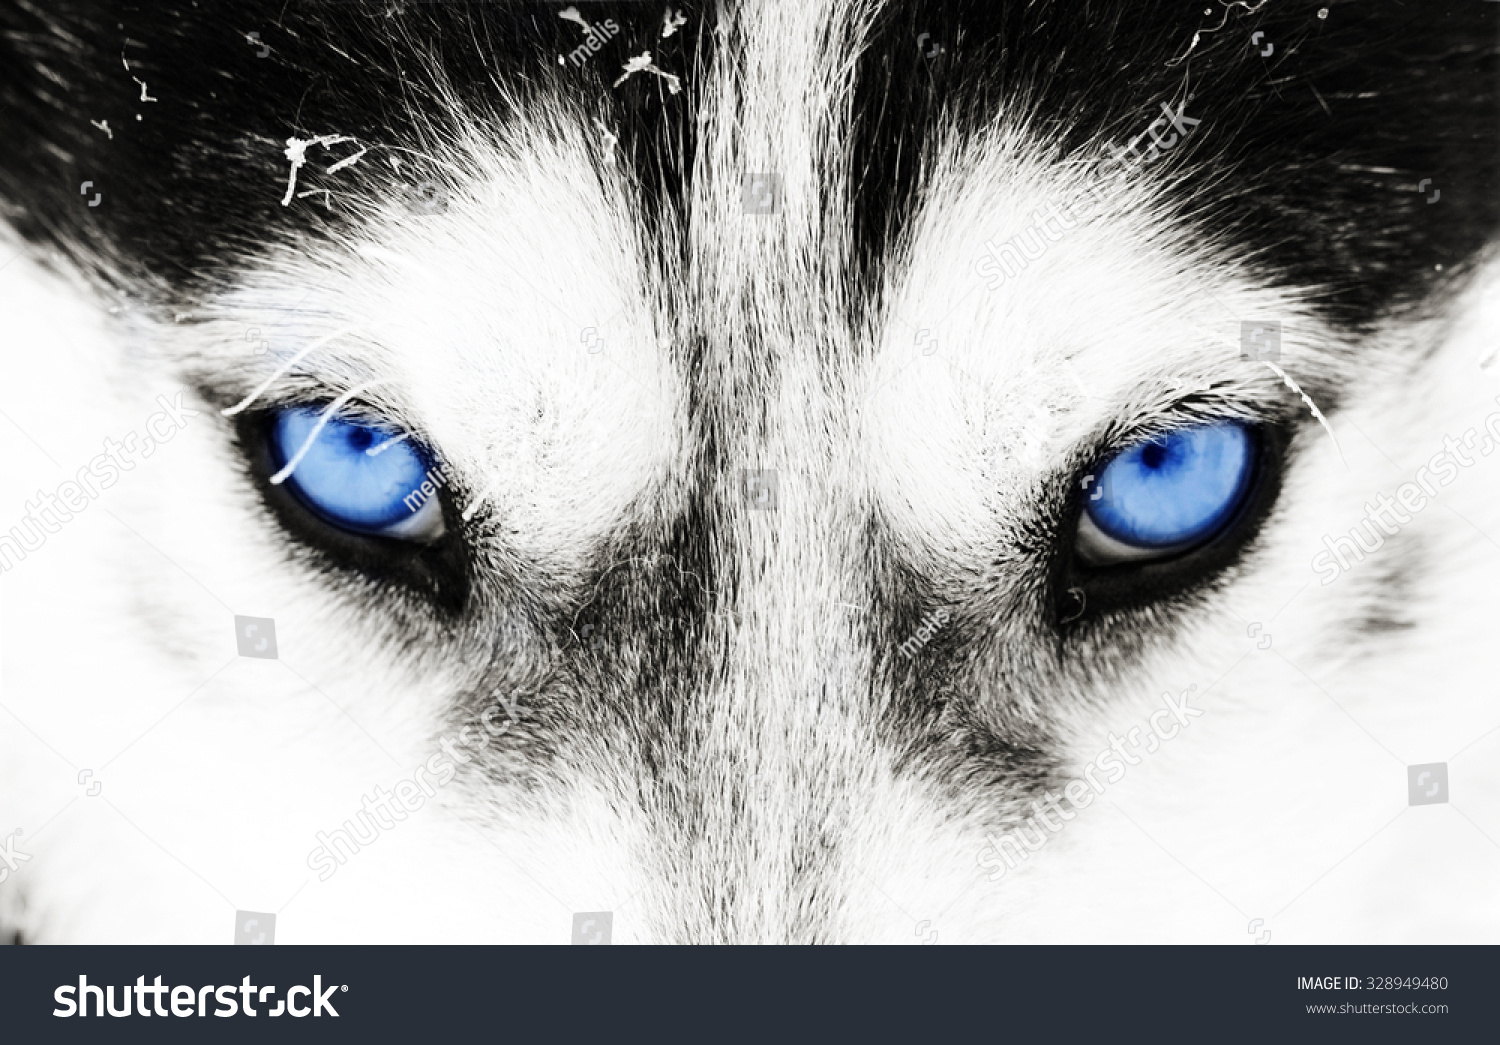 Is It Dangerous To Look Into Dogs Eyes